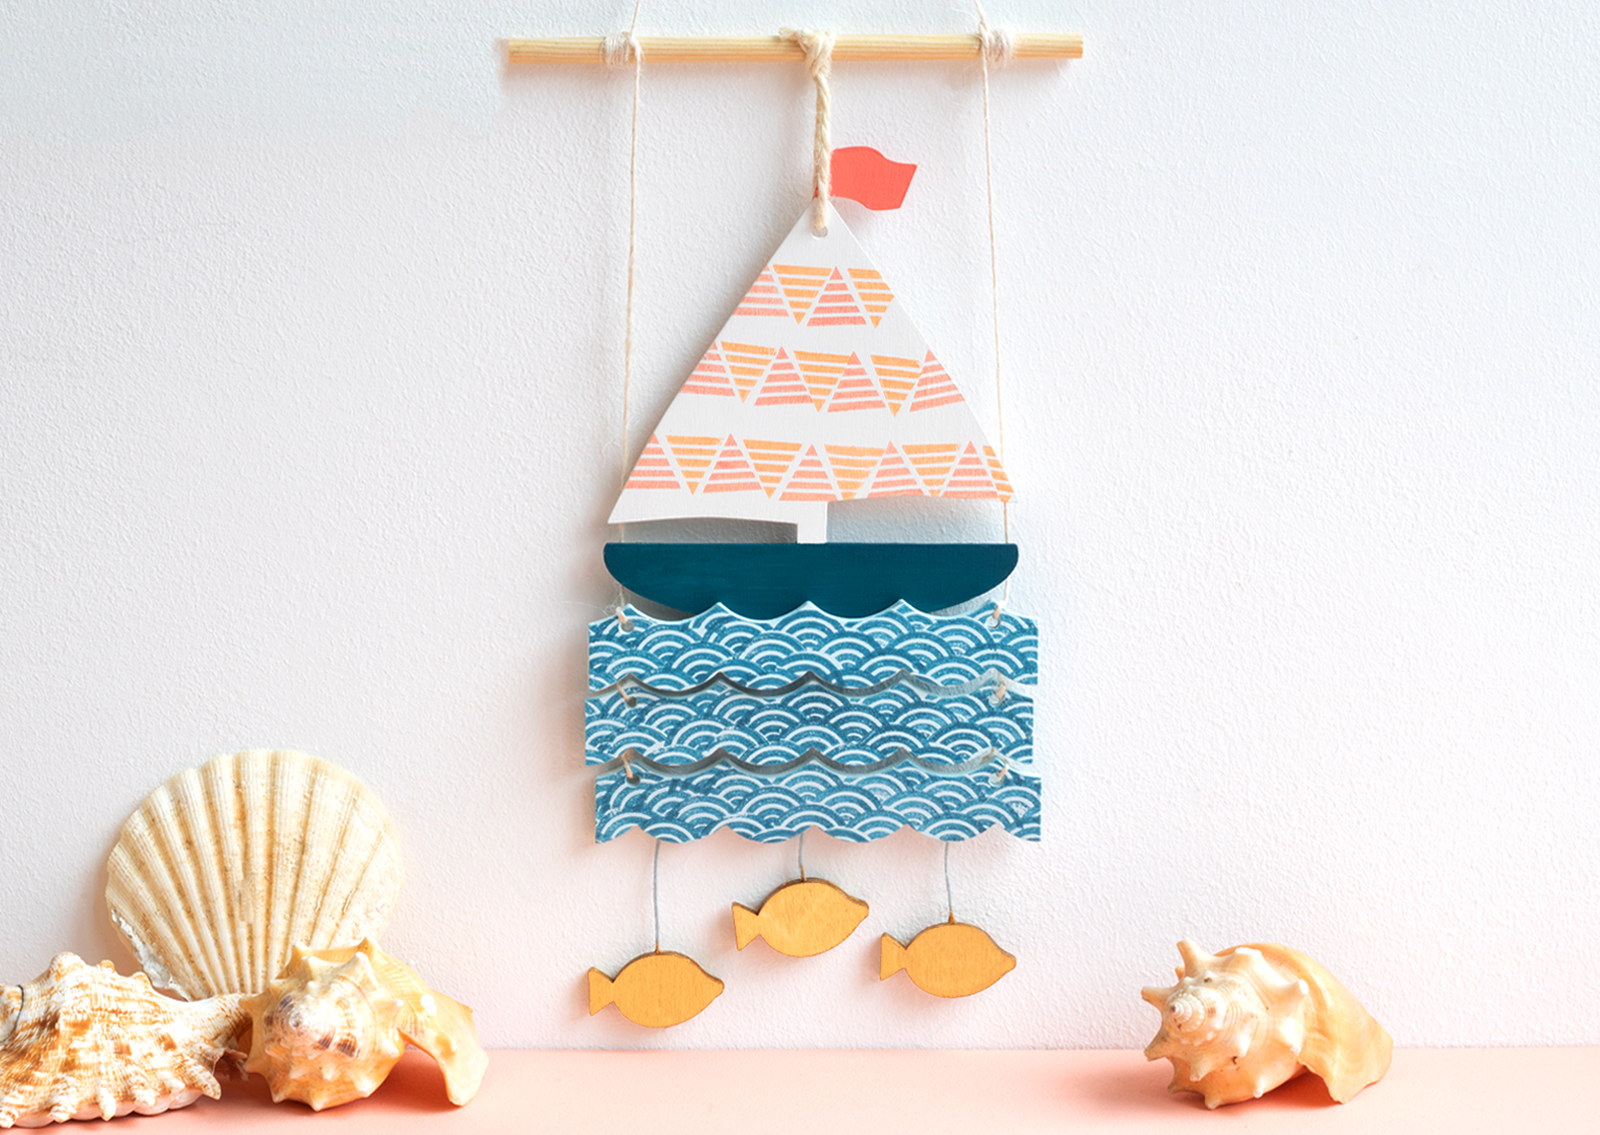 artcuts wooden boat wall hanging